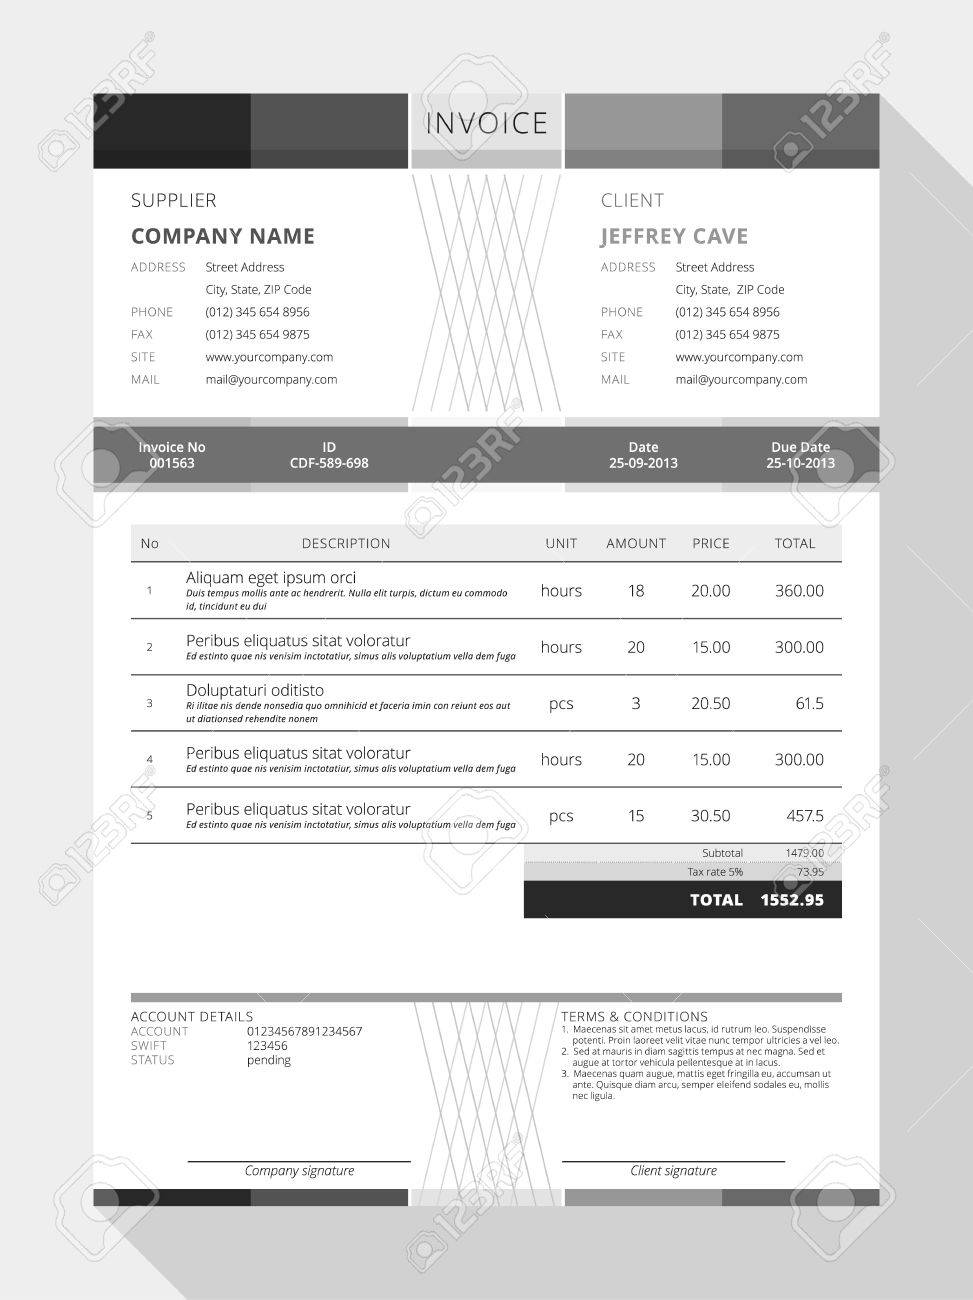 Usdgus  Seductive Design An Invoice  Professional Graphic Design Invoice  With Goodlooking Vector Customizable Invoice Form Template Design Vector   Design An Invoice With Cool Acura Tl Invoice Price Also Invoice Template Example In Addition Invoice Line Item And Basic Invoice Form As Well As Recipient Created Tax Invoices Additionally Contractor Invoicing Software From Happytomco With Usdgus  Goodlooking Design An Invoice  Professional Graphic Design Invoice  With Cool Vector Customizable Invoice Form Template Design Vector   Design An Invoice And Seductive Acura Tl Invoice Price Also Invoice Template Example In Addition Invoice Line Item From Happytomco